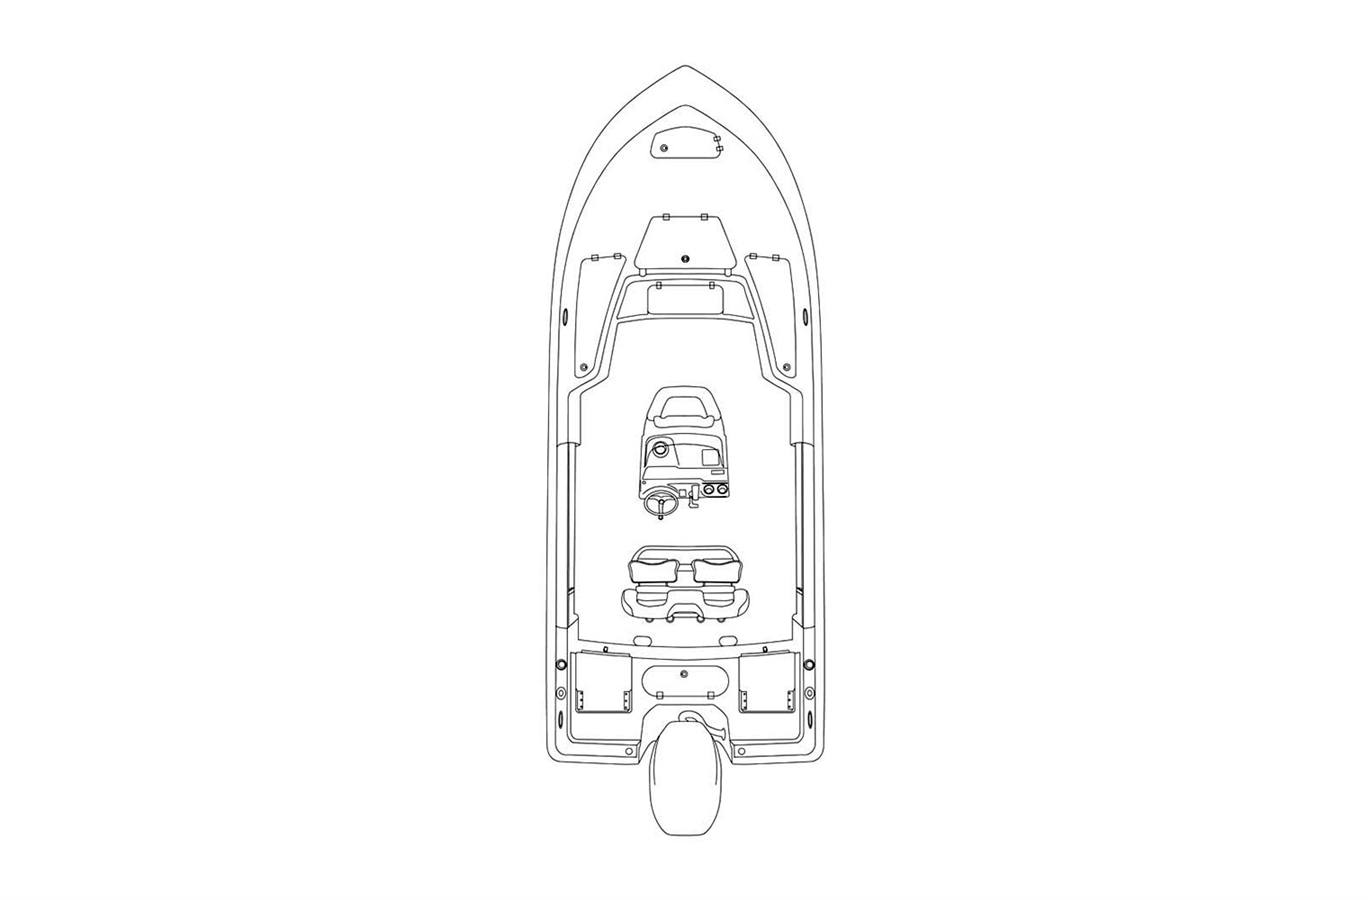 2018 Tidewater Boats 2110 Bay Max For Sale In Wilmington Nc Atlas Jack Plate Wiring Diagram Marker 17 Marine 910 821 0190